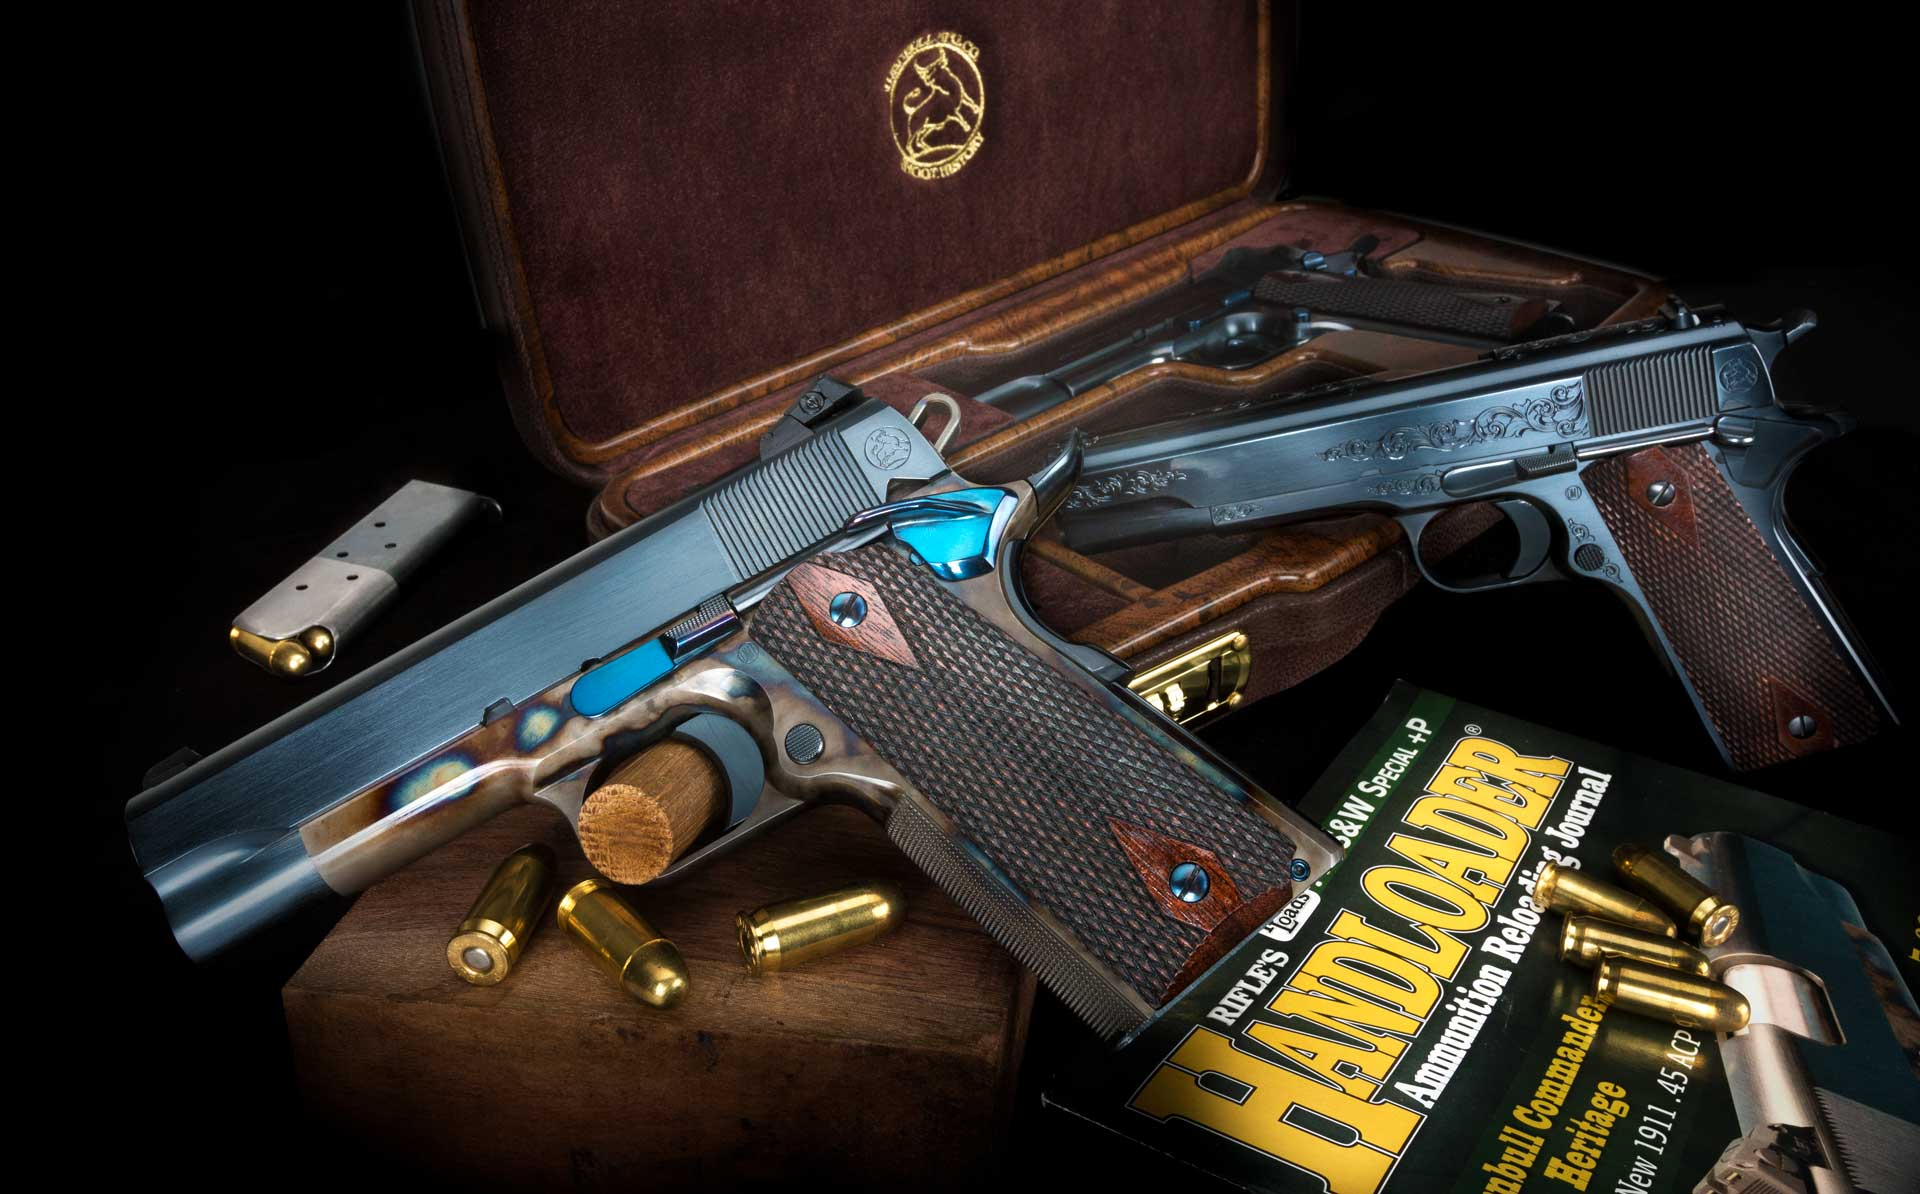 A collection of Turnbull 1911s next to an issue of Handloader Magazine